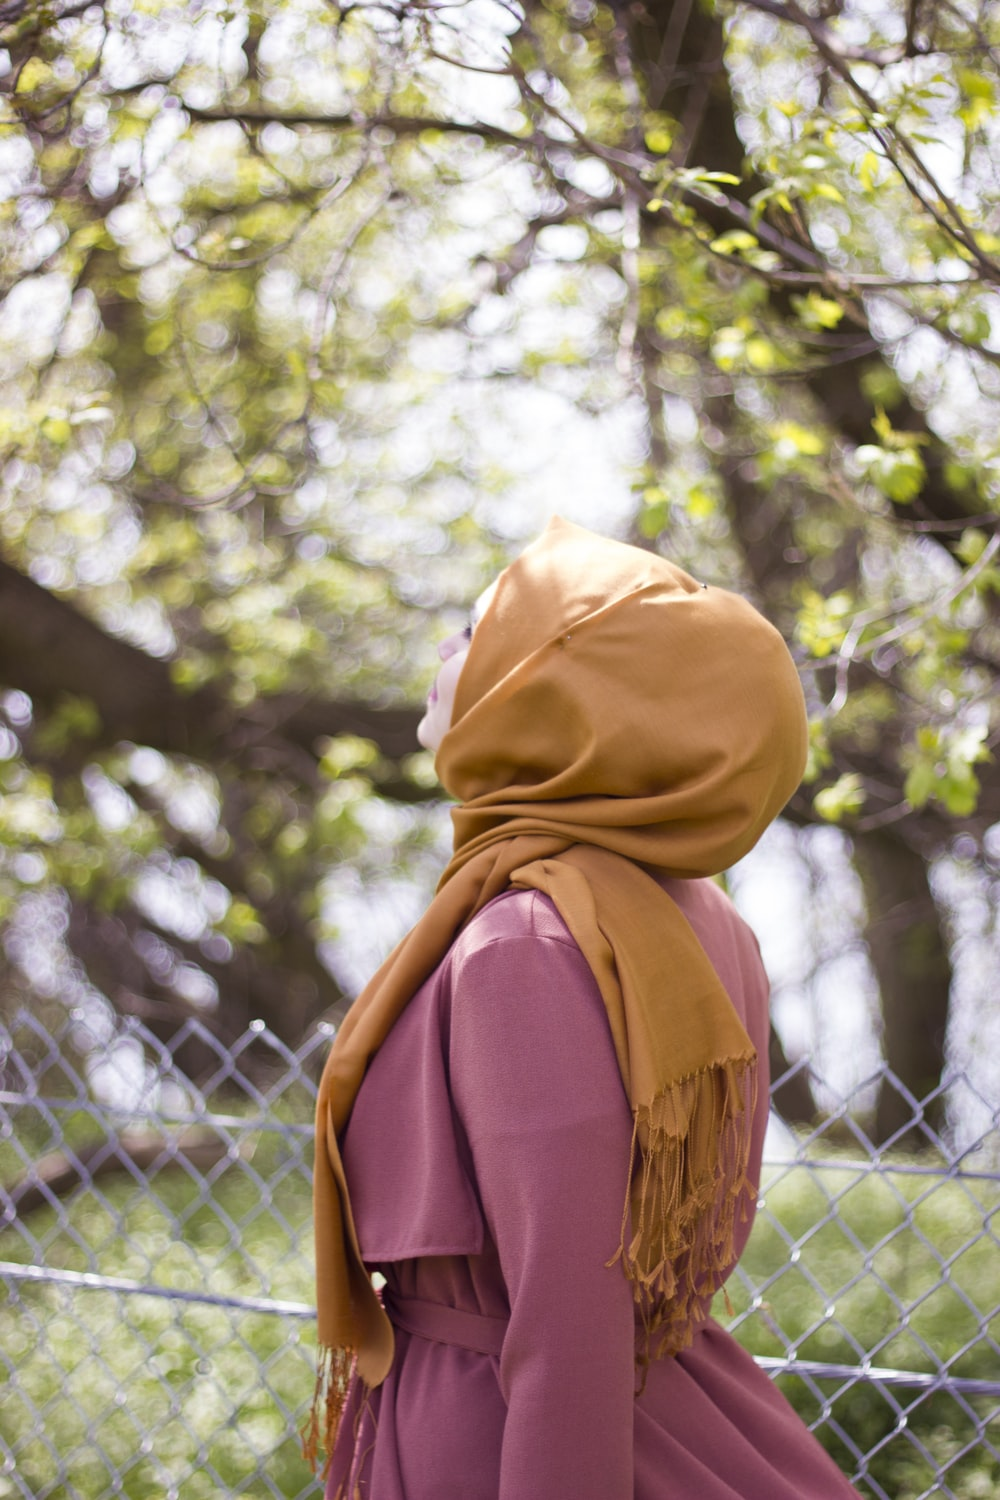 500 hijab pictures hd download free images on unsplash